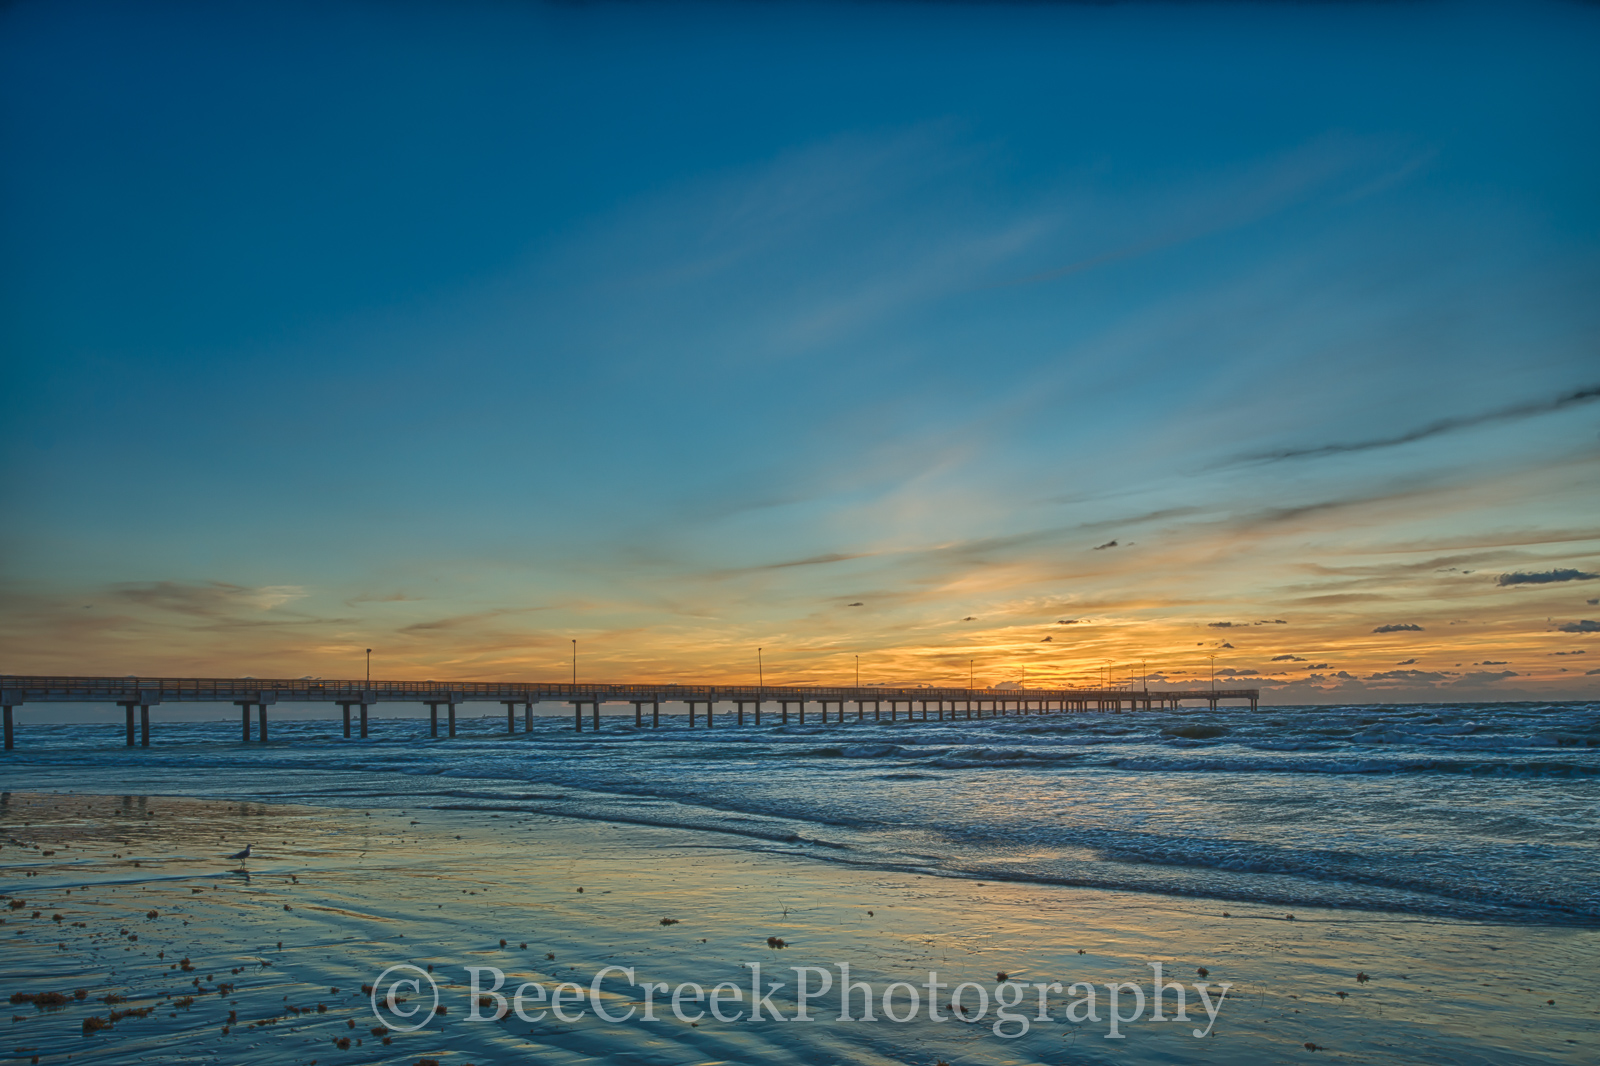 Port A, Port Aransas, Sunrise, Texas Coast, Texas beach, beach, blue, coast, coastal, fishing pier, gulf of mexico, landscape, landscapes, nature, ocean, pier, sand, sea weed, seascape, seascapes, sur, photo